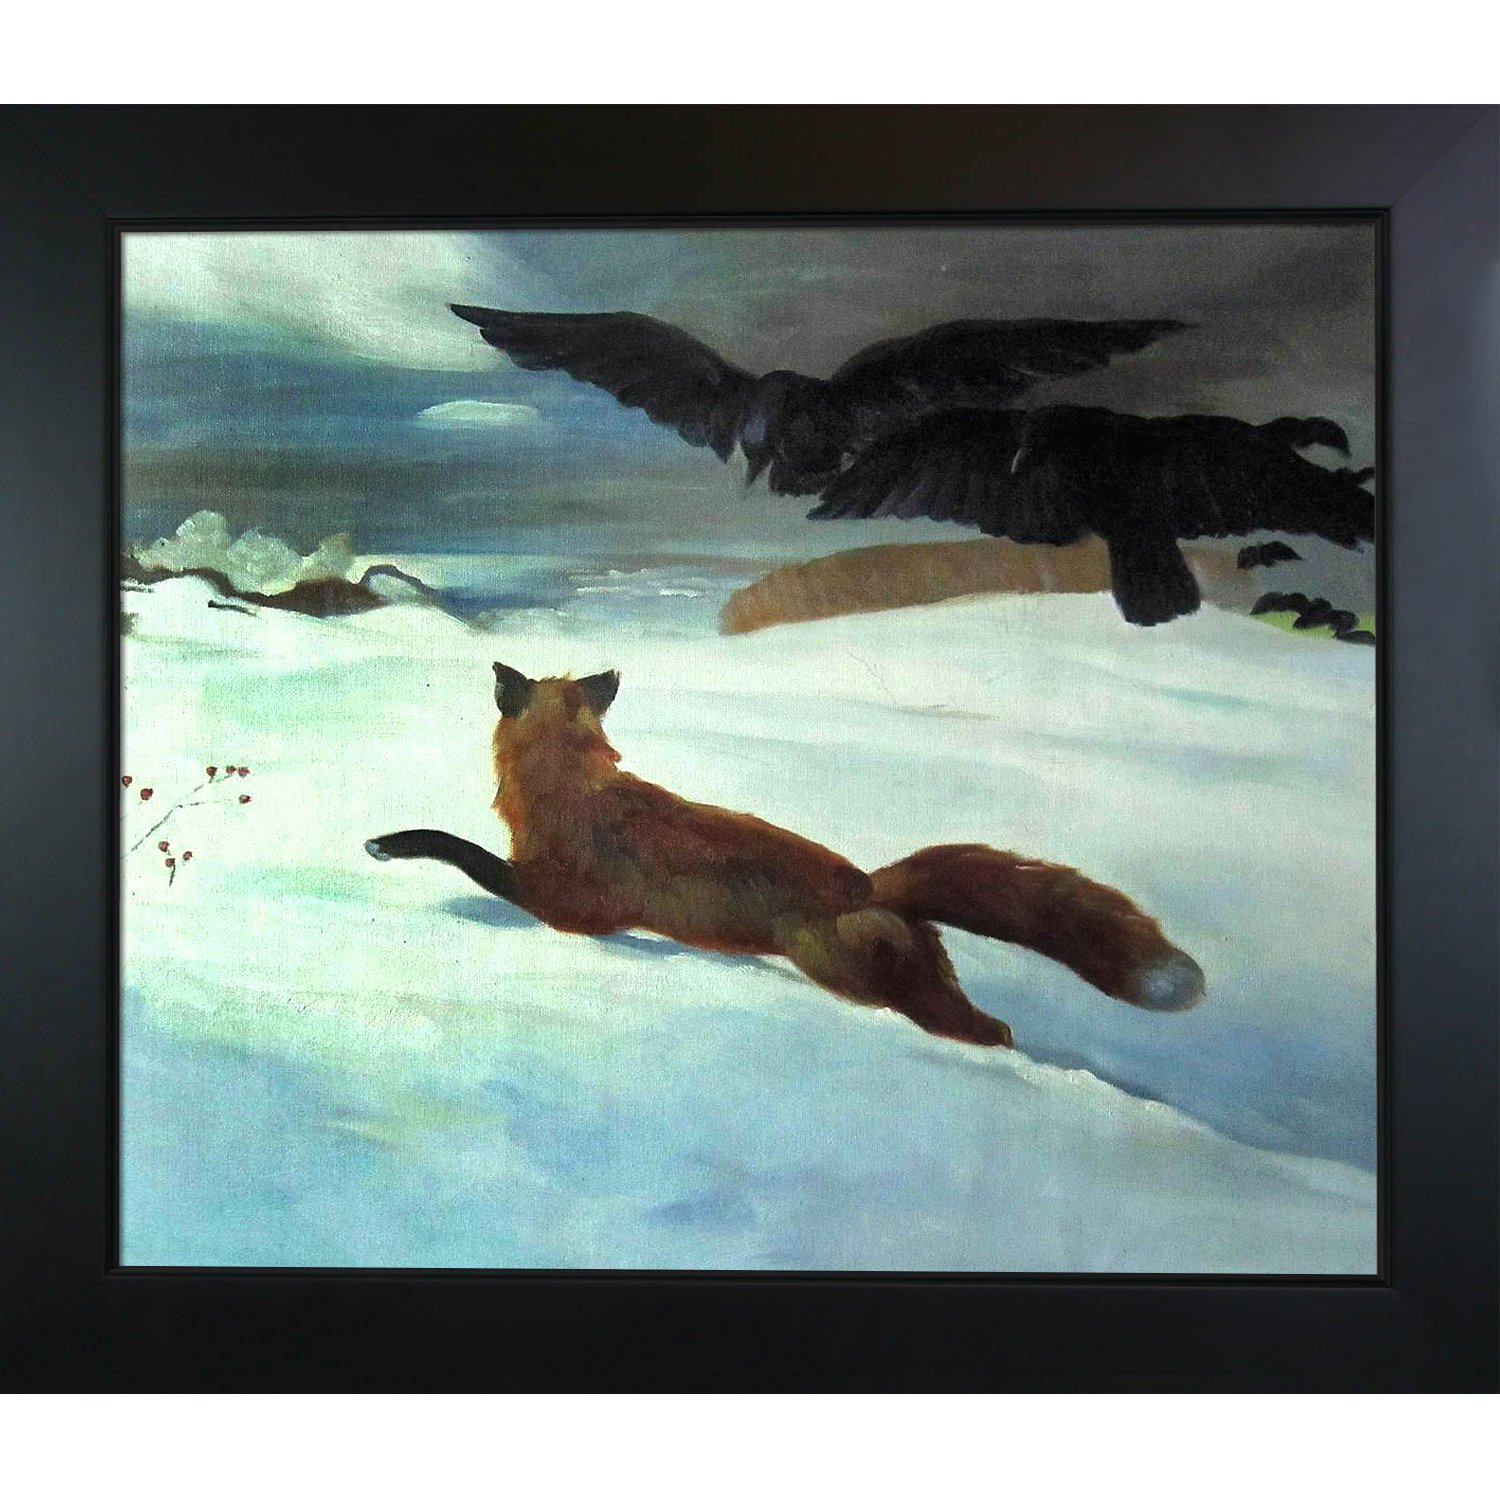 overstockArt Homer The Fox Hunt Framed Oil Reproduction of an Original Painting by Winslow Homer